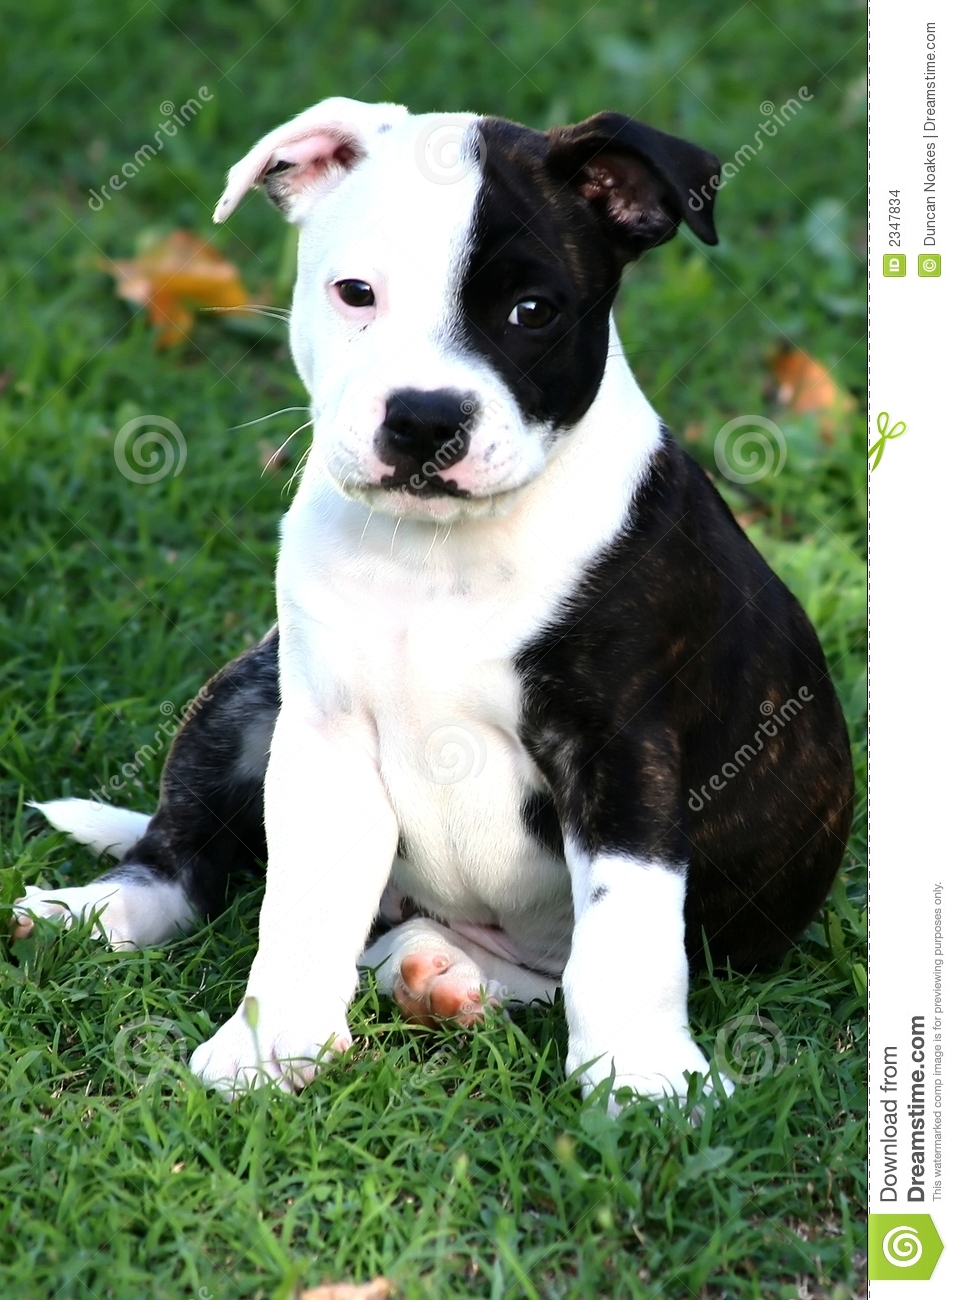 Staffordshire Terrier Puppy Stock Images - Image: 2347834